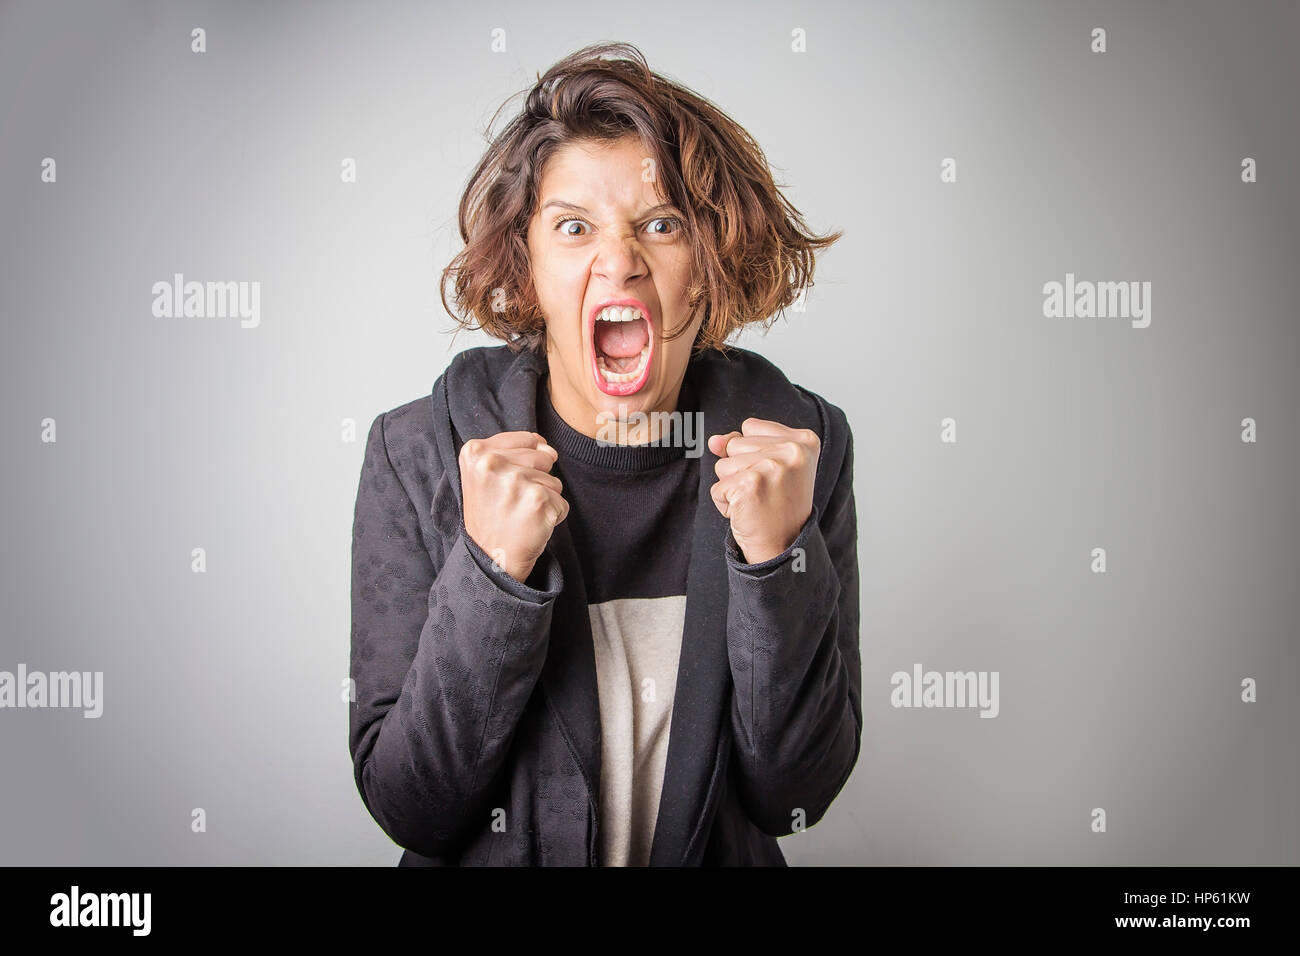 Furious angry woman screaming with rage and frustration - Stock Image